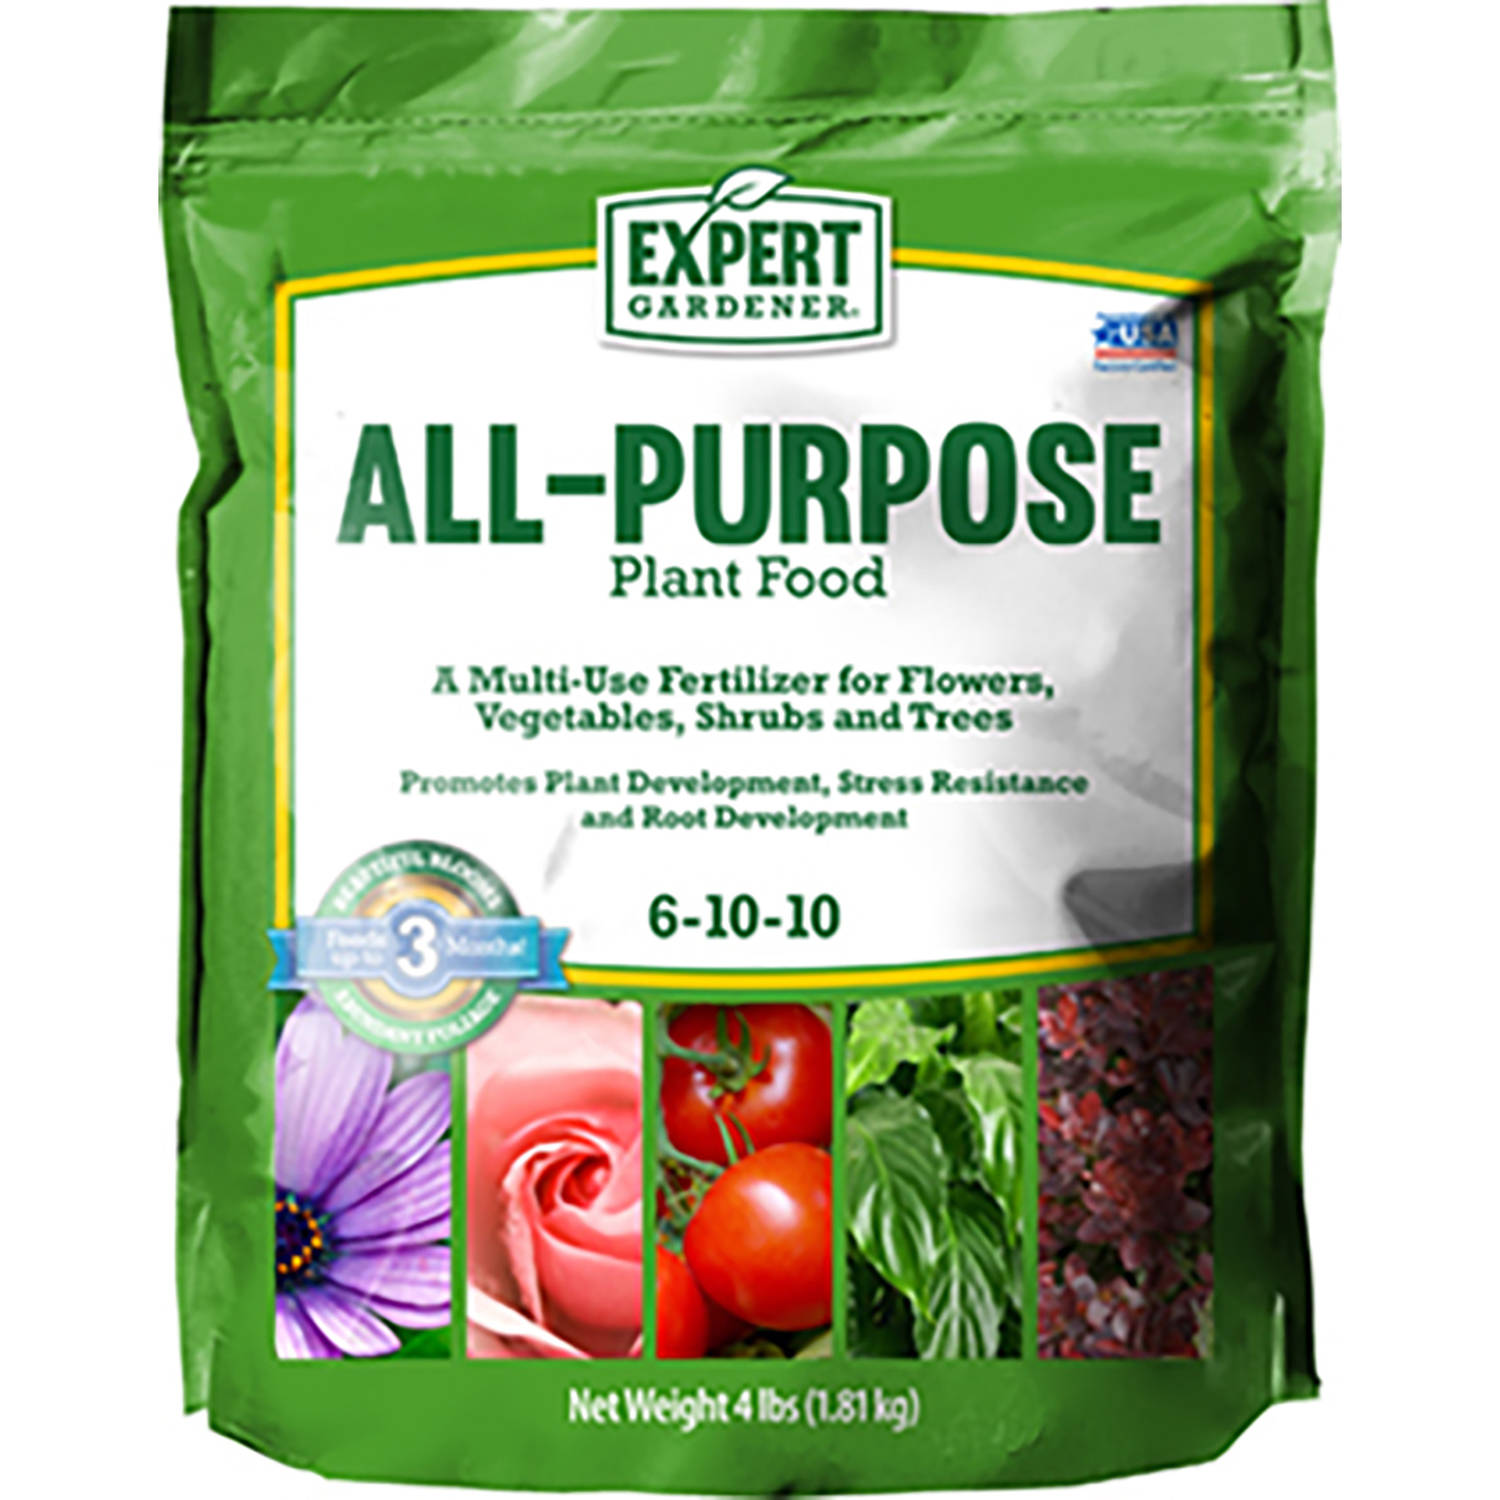 learn all about expert gardener plant